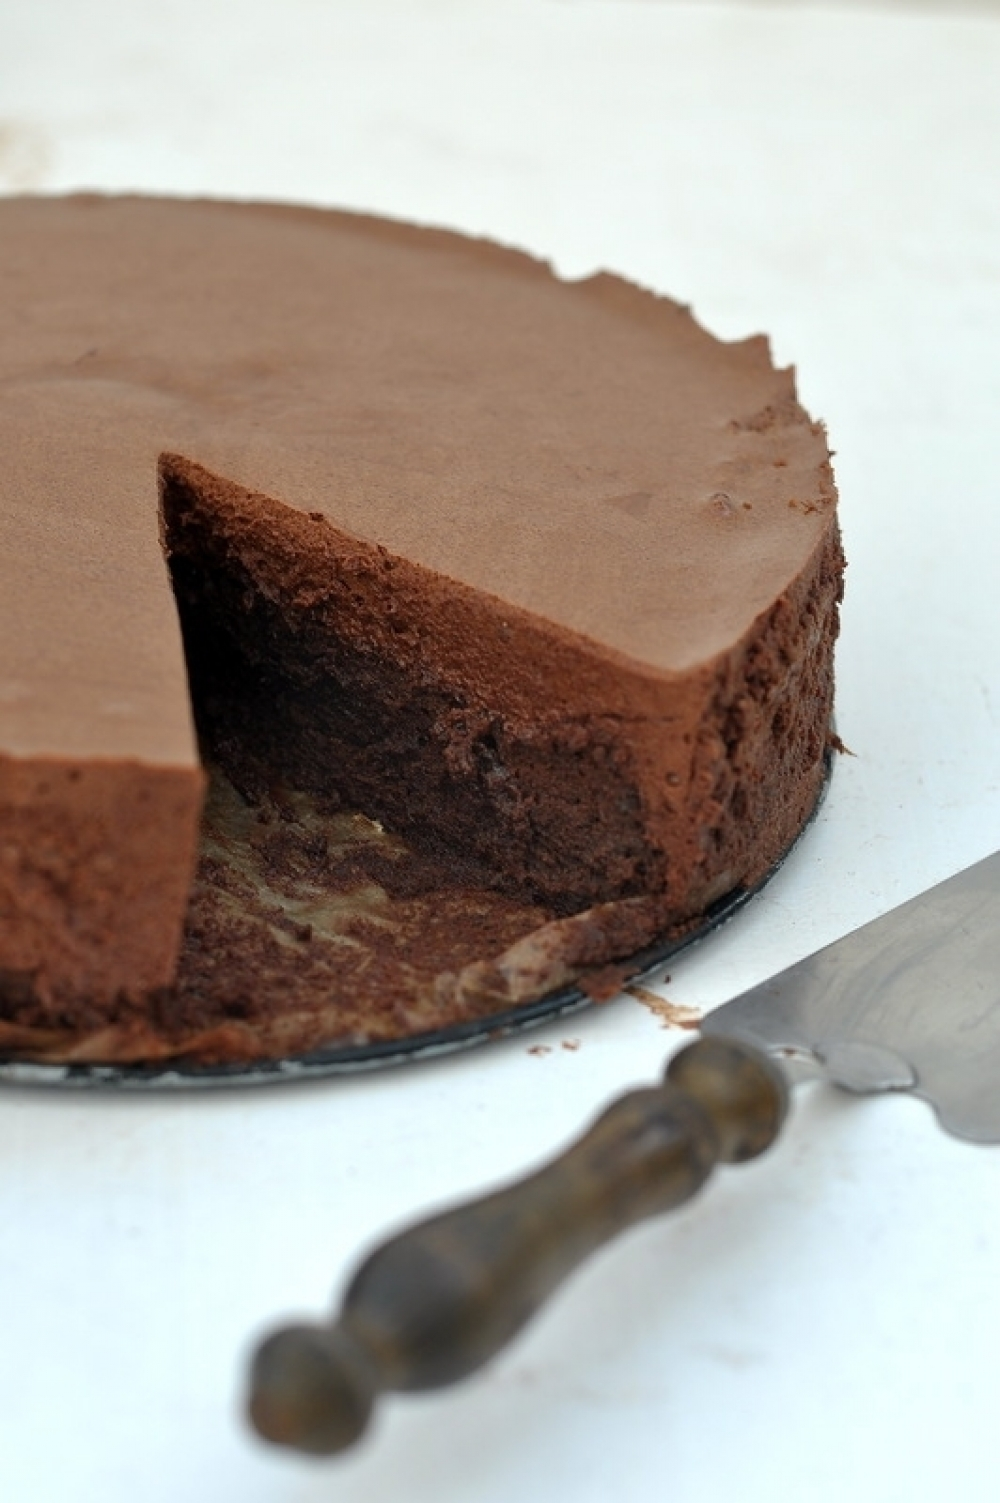 A chocolate cake with chocolate mousse